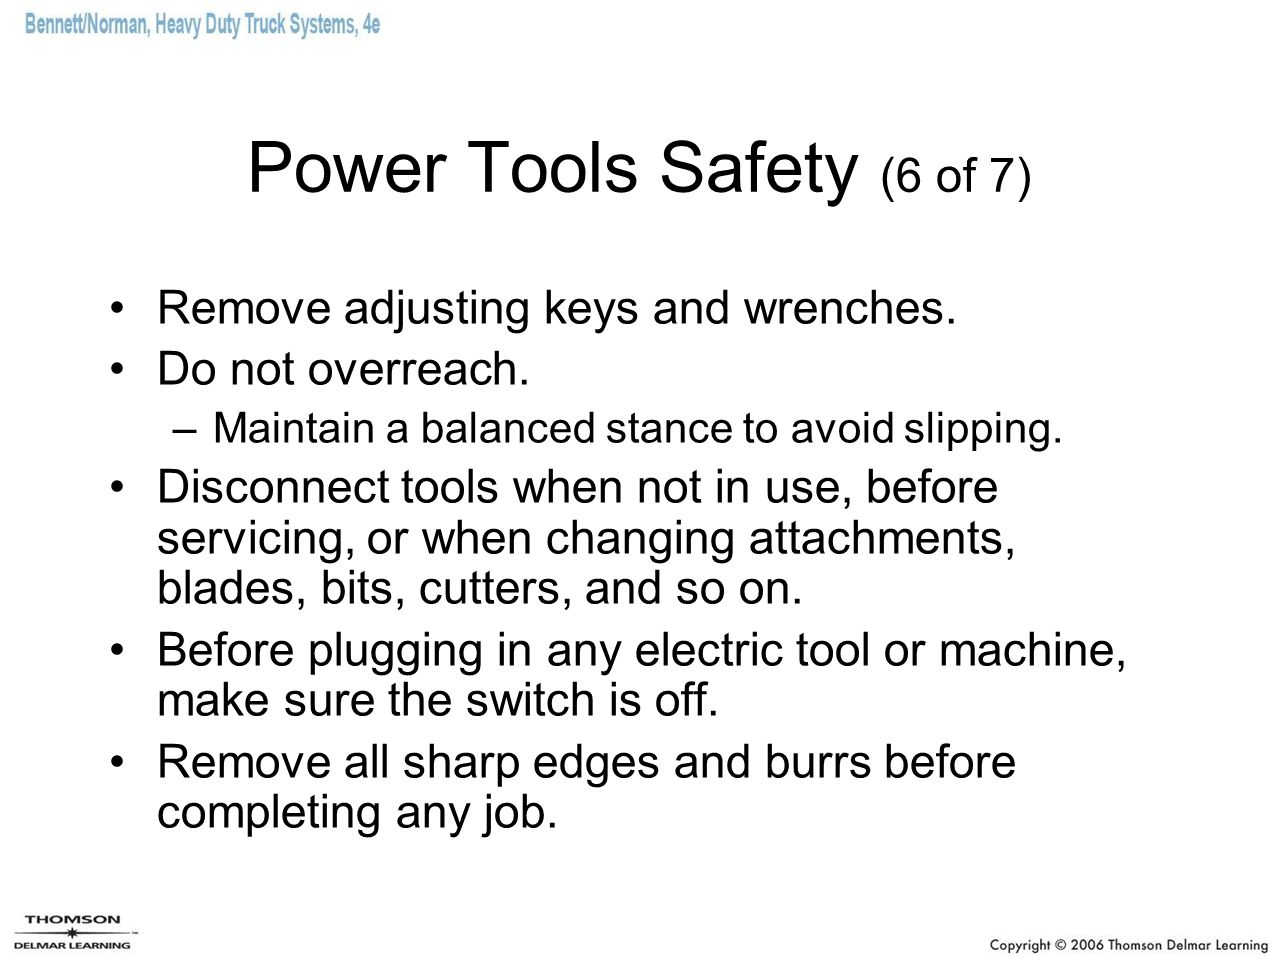 Power Tools Safety (6 of 7)